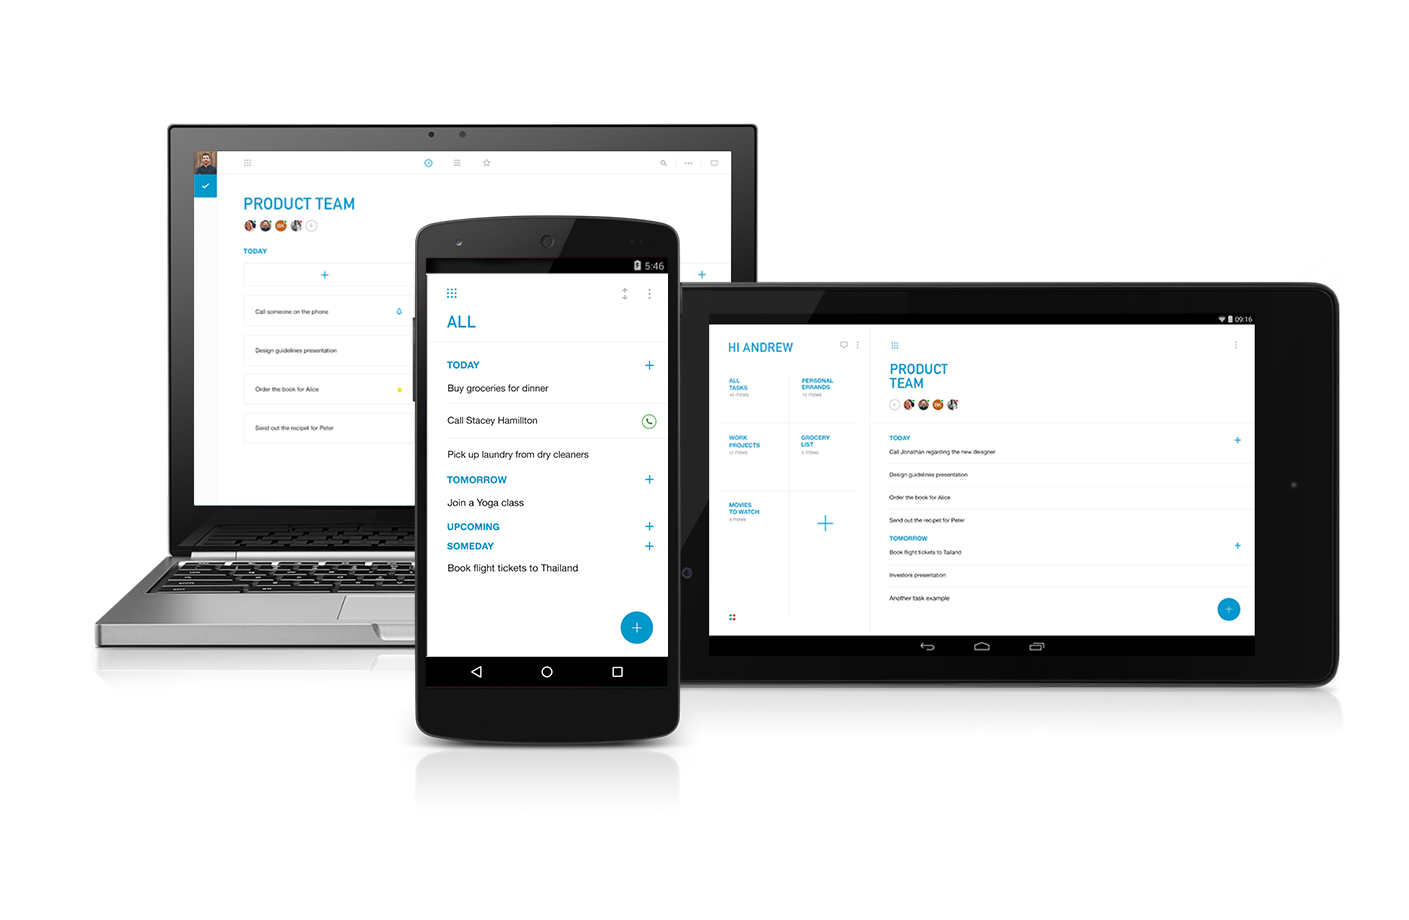 5 Best To-Do List Managers for Android - Any.do